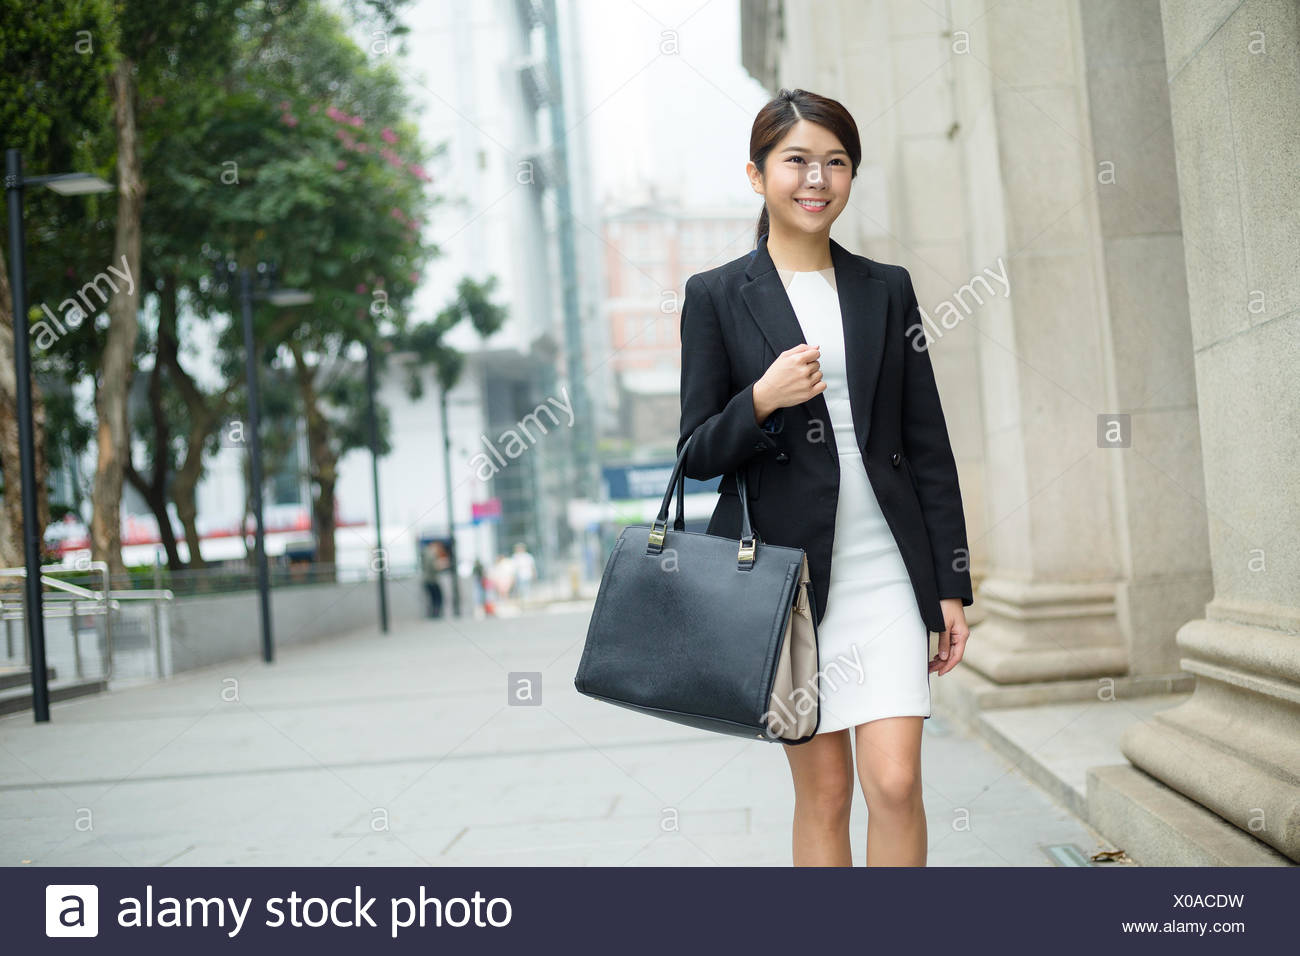 Businesswoman carry a bag and leaving office - Stock Image